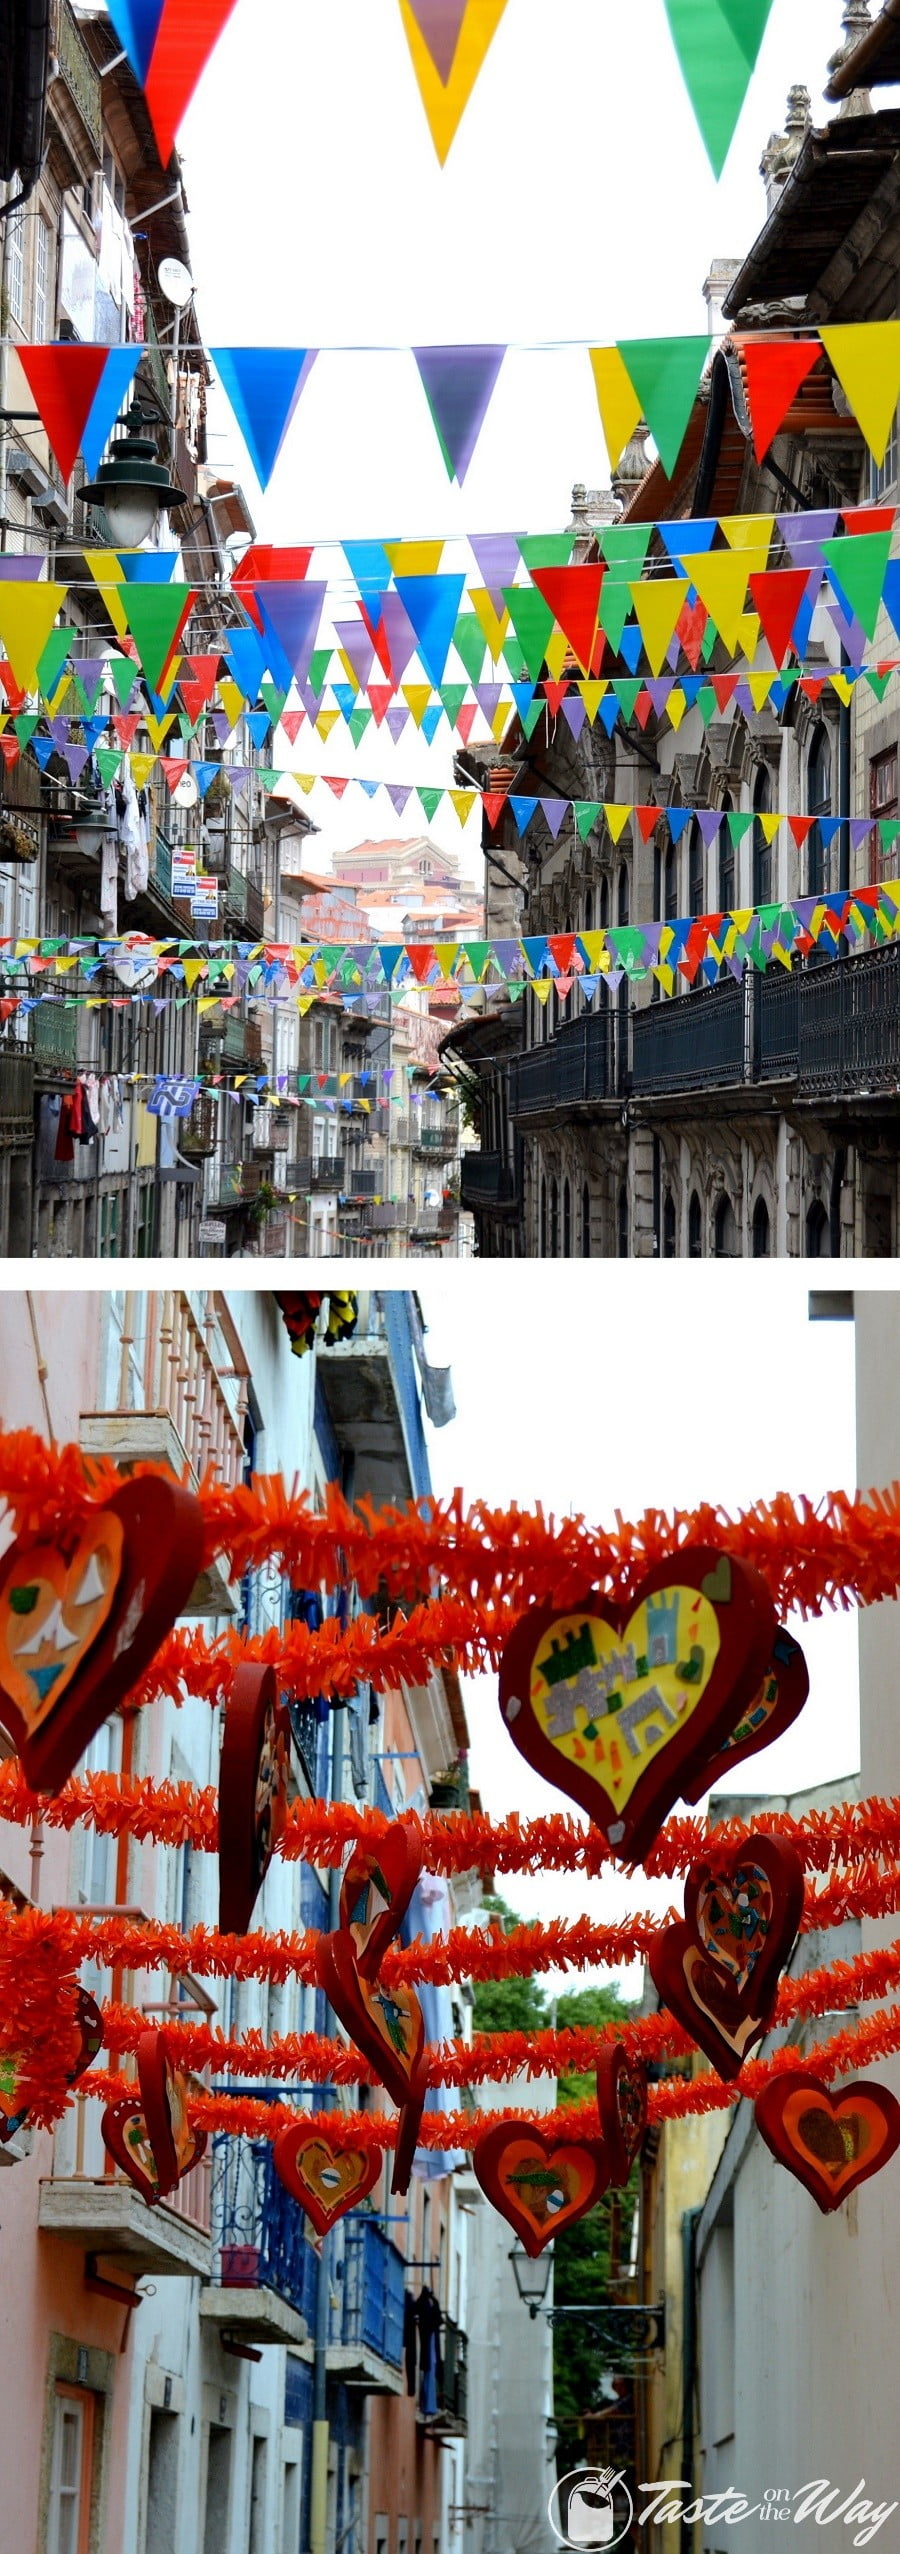 One of the top #thingstodo in #Porto, #Portugal is to celebrate festivals. Check out for more! #travel #photography @tasteontheway